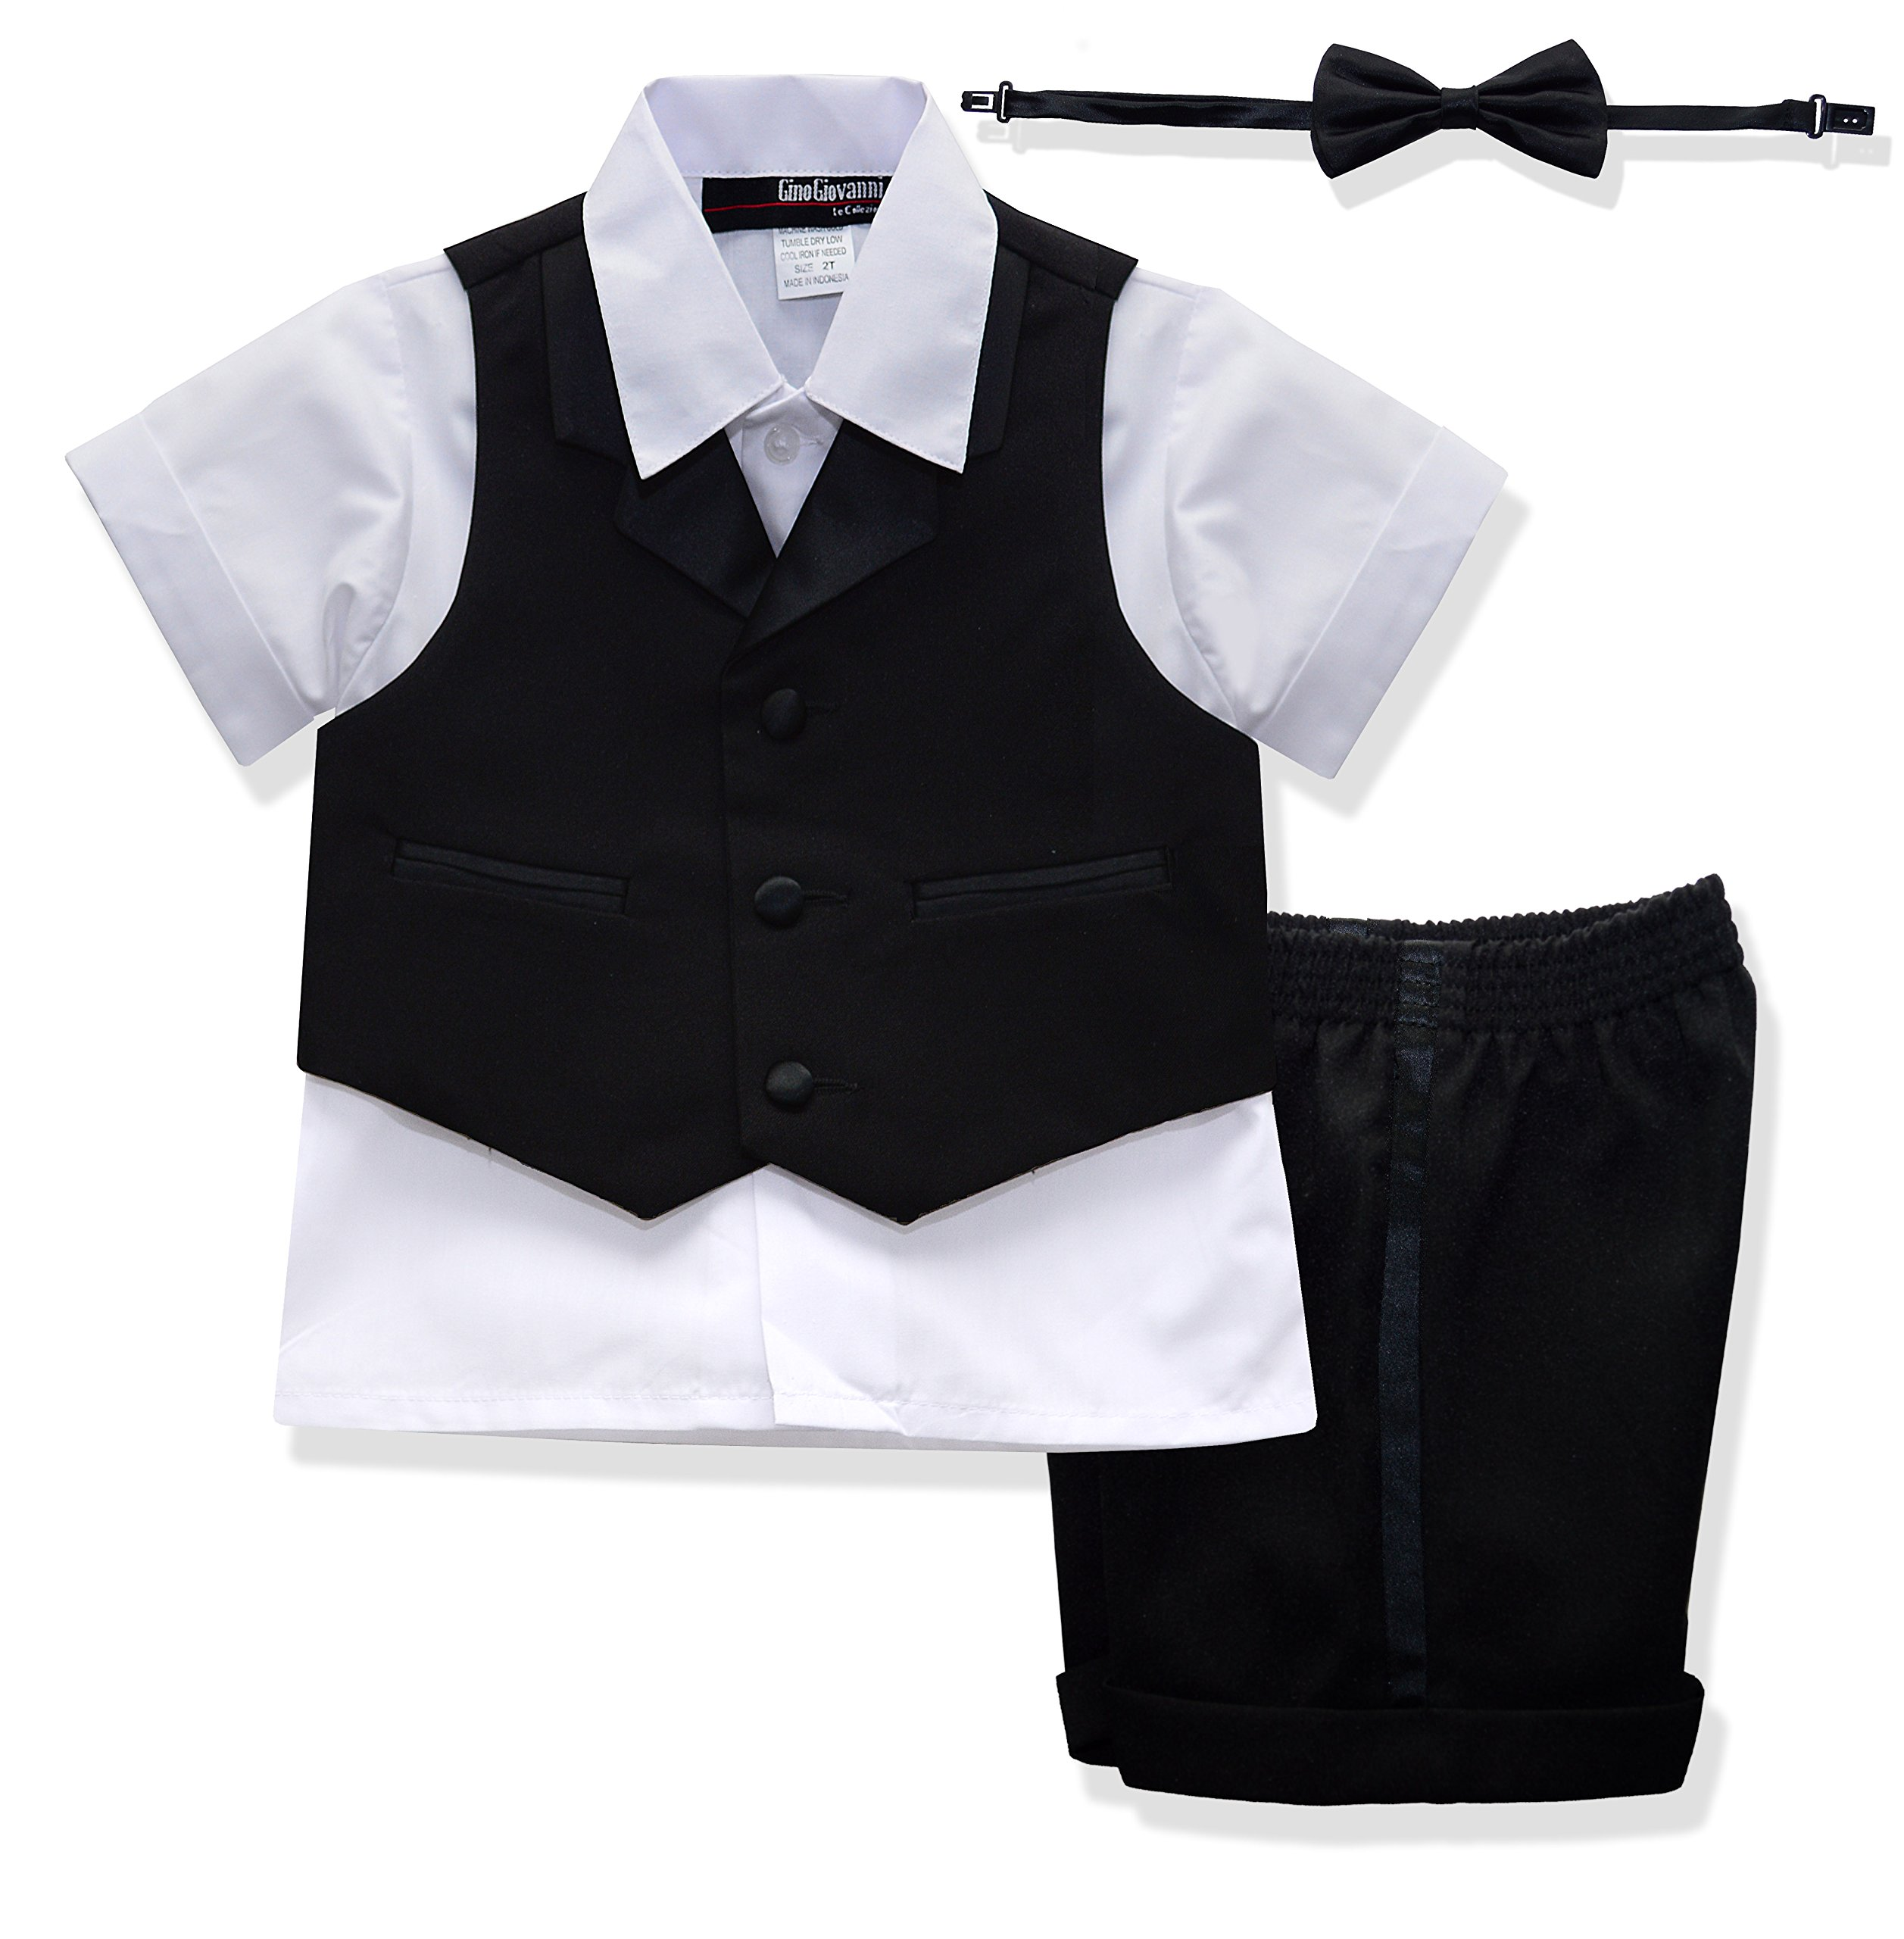 G224 BABY AND TODDLER BOY SUMMER TUXEDO SHORT SET BLACK (X-Large (18-24 months))